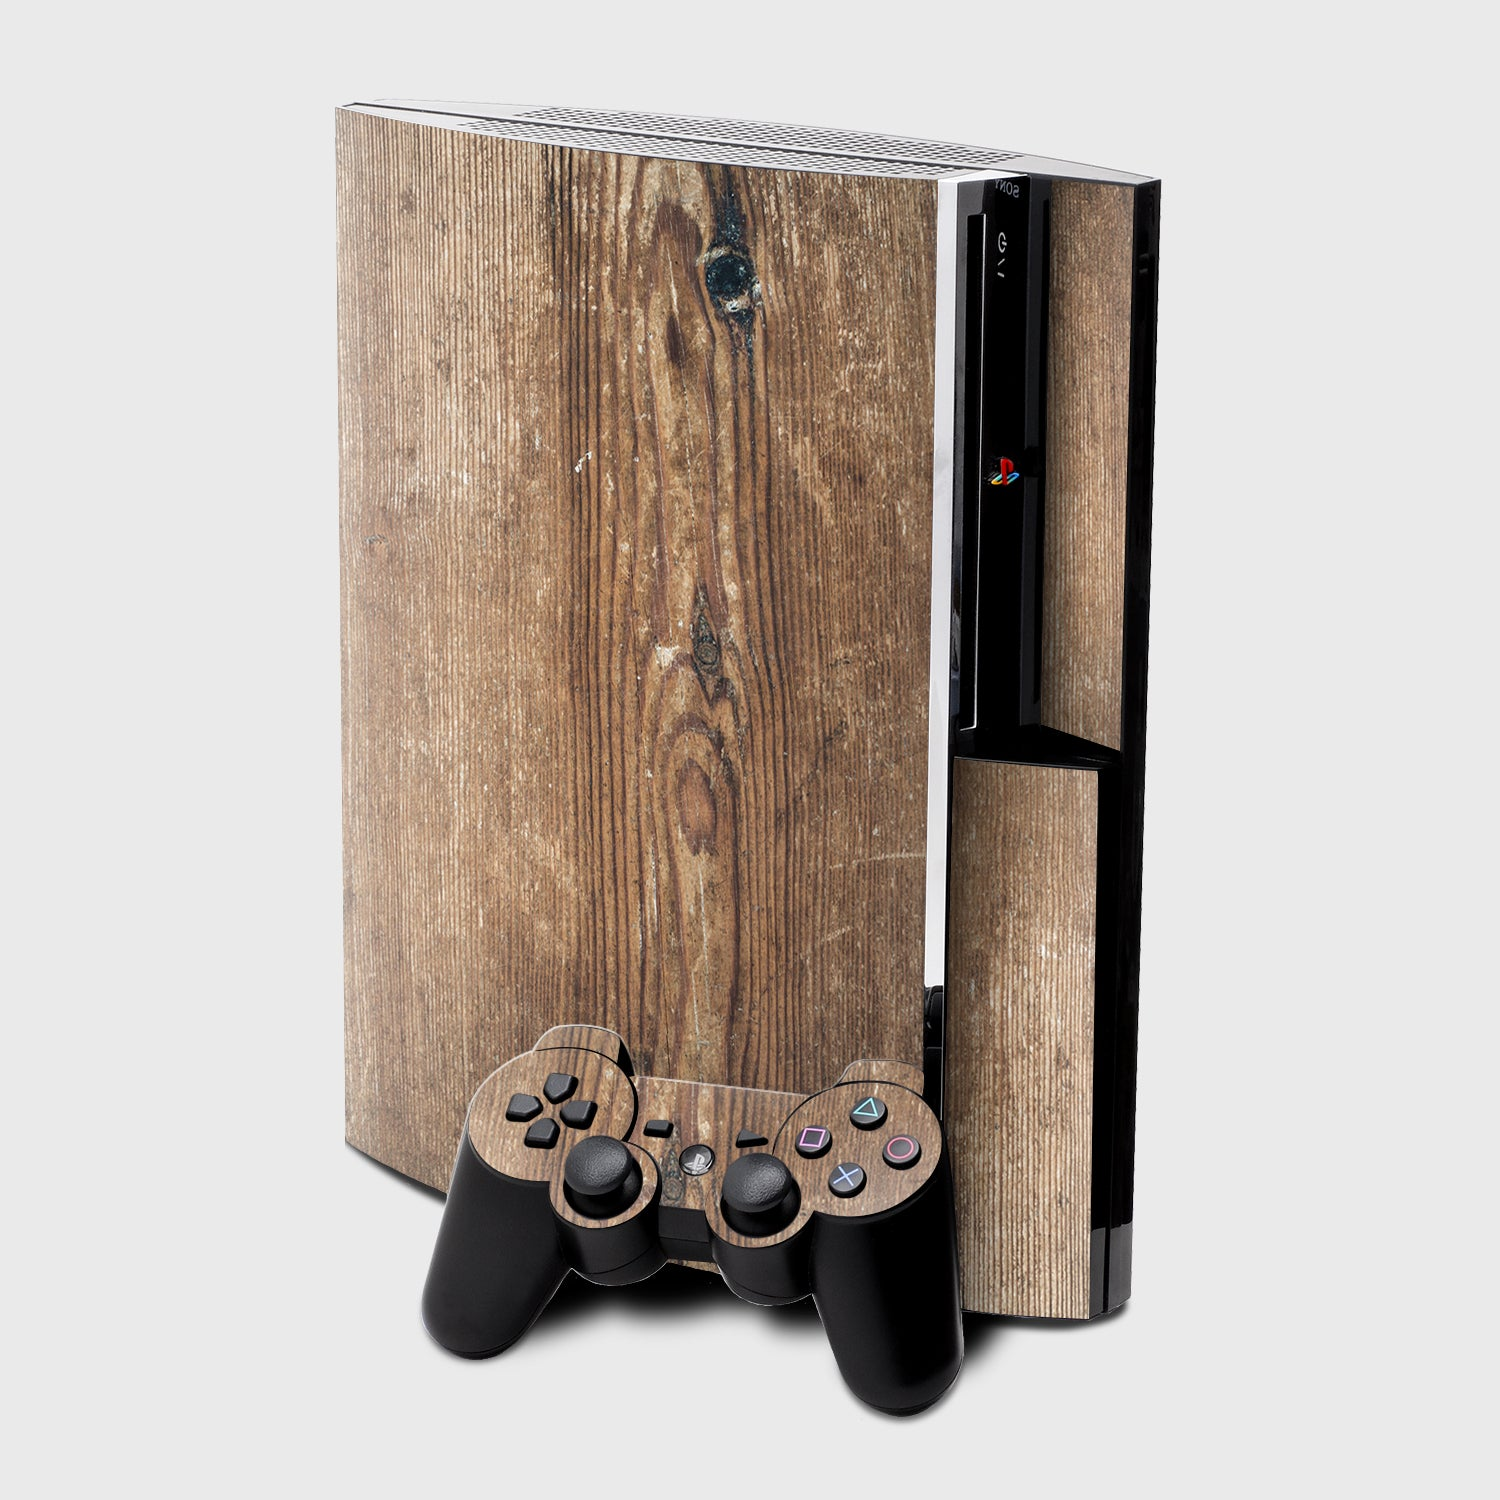 PINE WOOD Sony PS3 skins | Pigtou